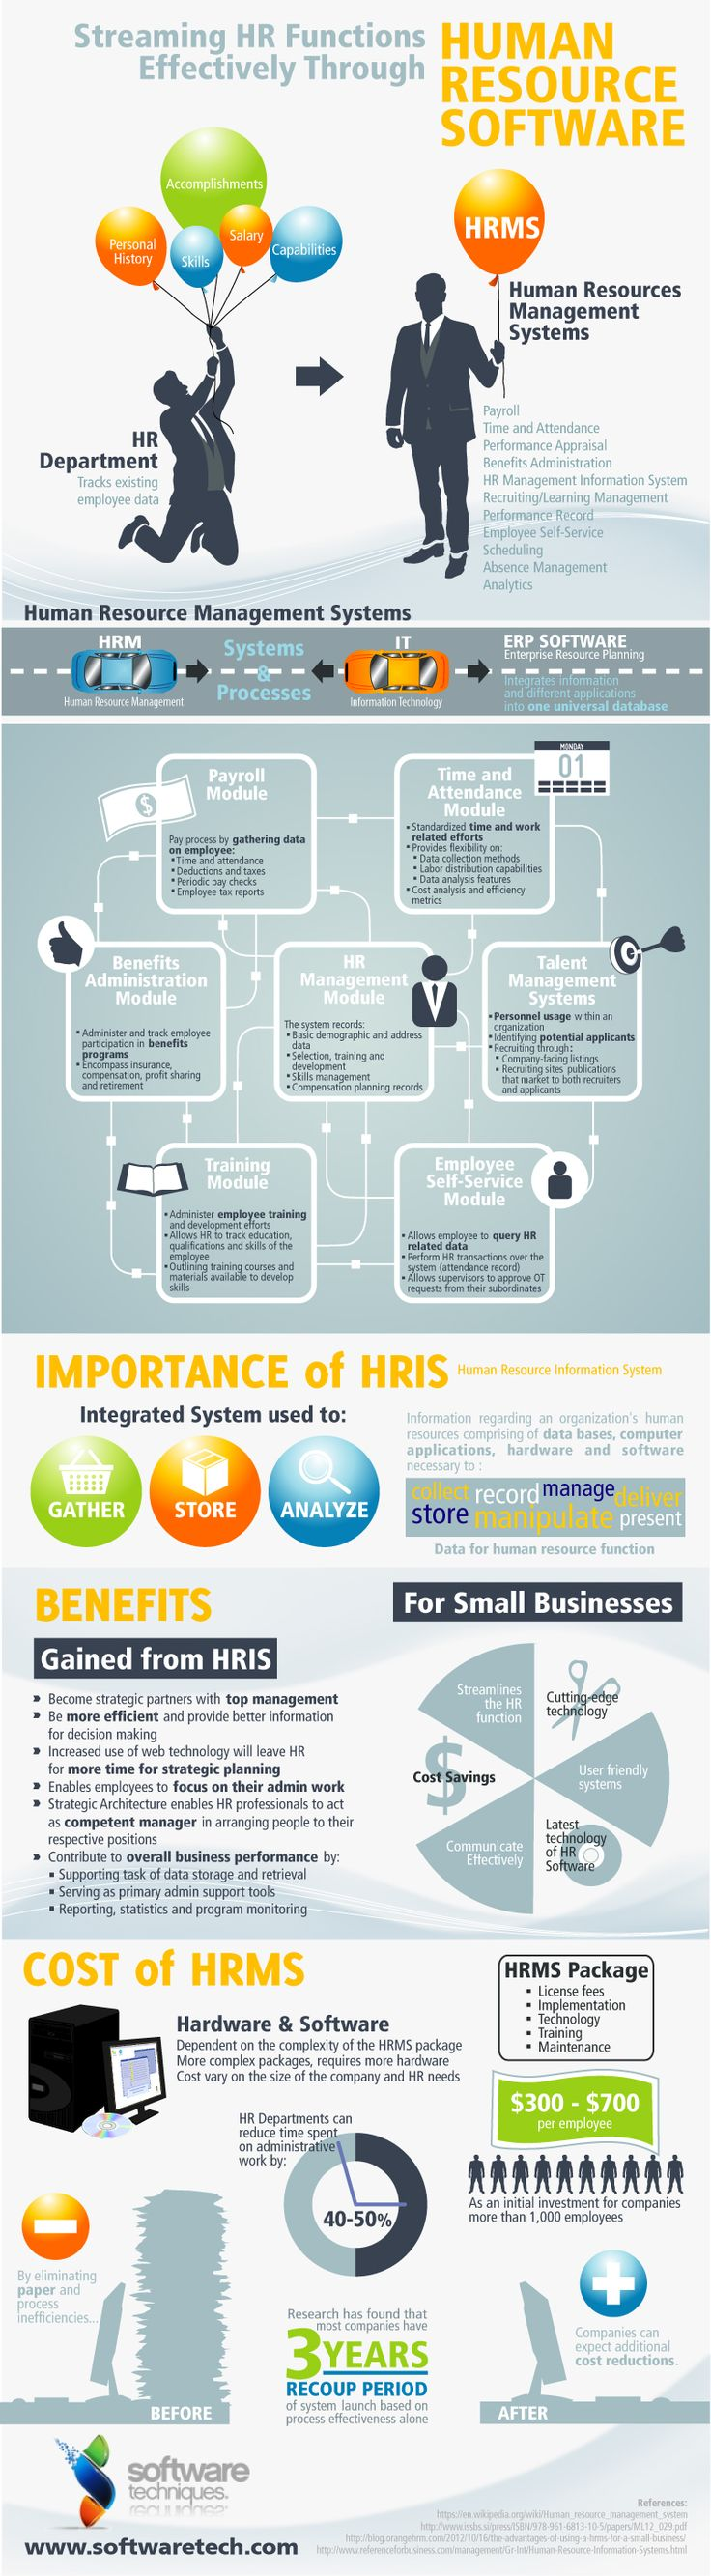 Best Hr Images On   Human Resources Business